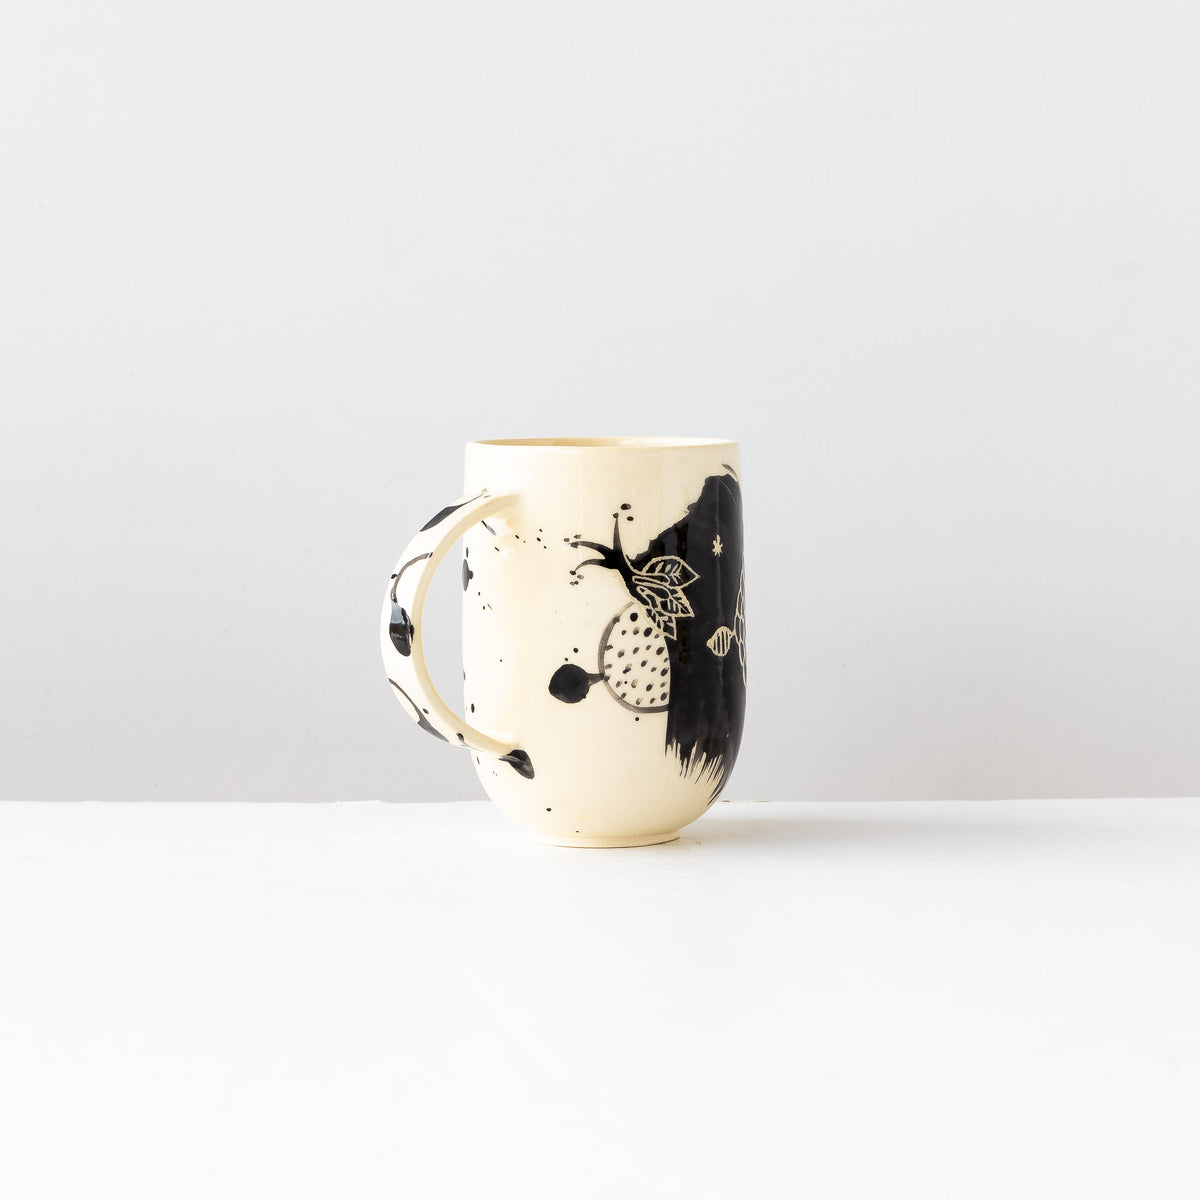 Large Hand Painted Earthenware Mug - Sold by Chic & Basta